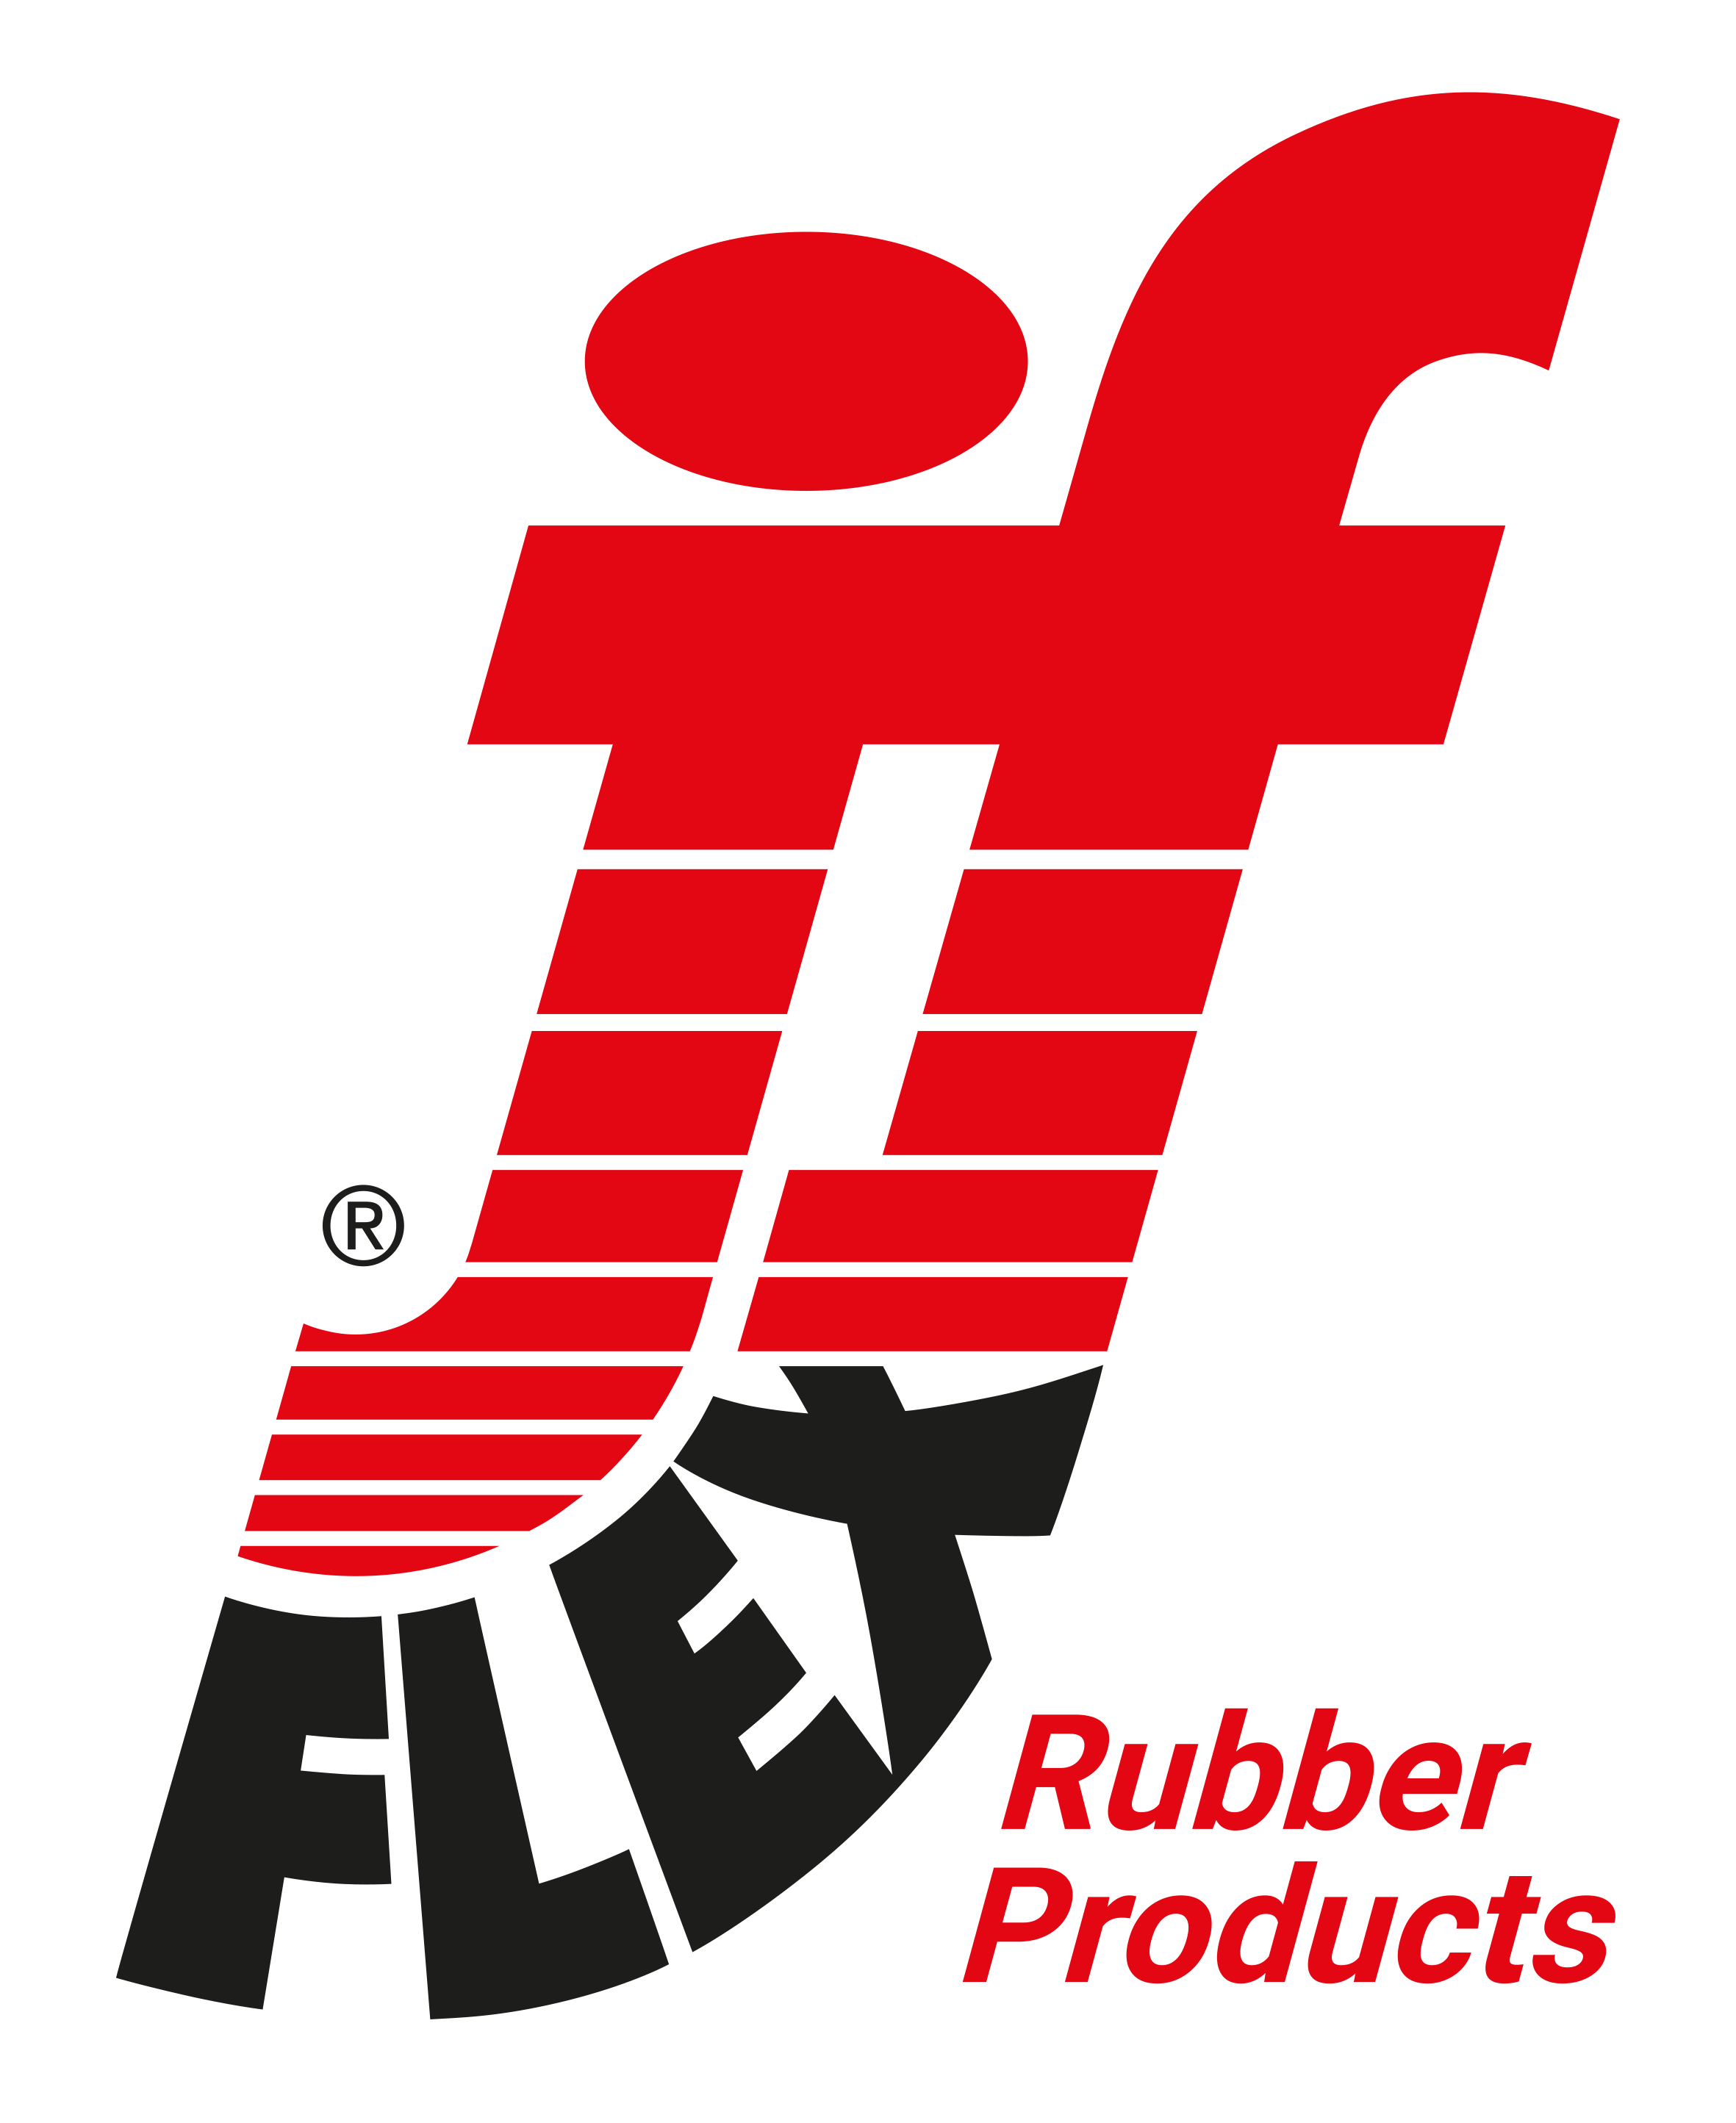 J-Flex Rubber Products